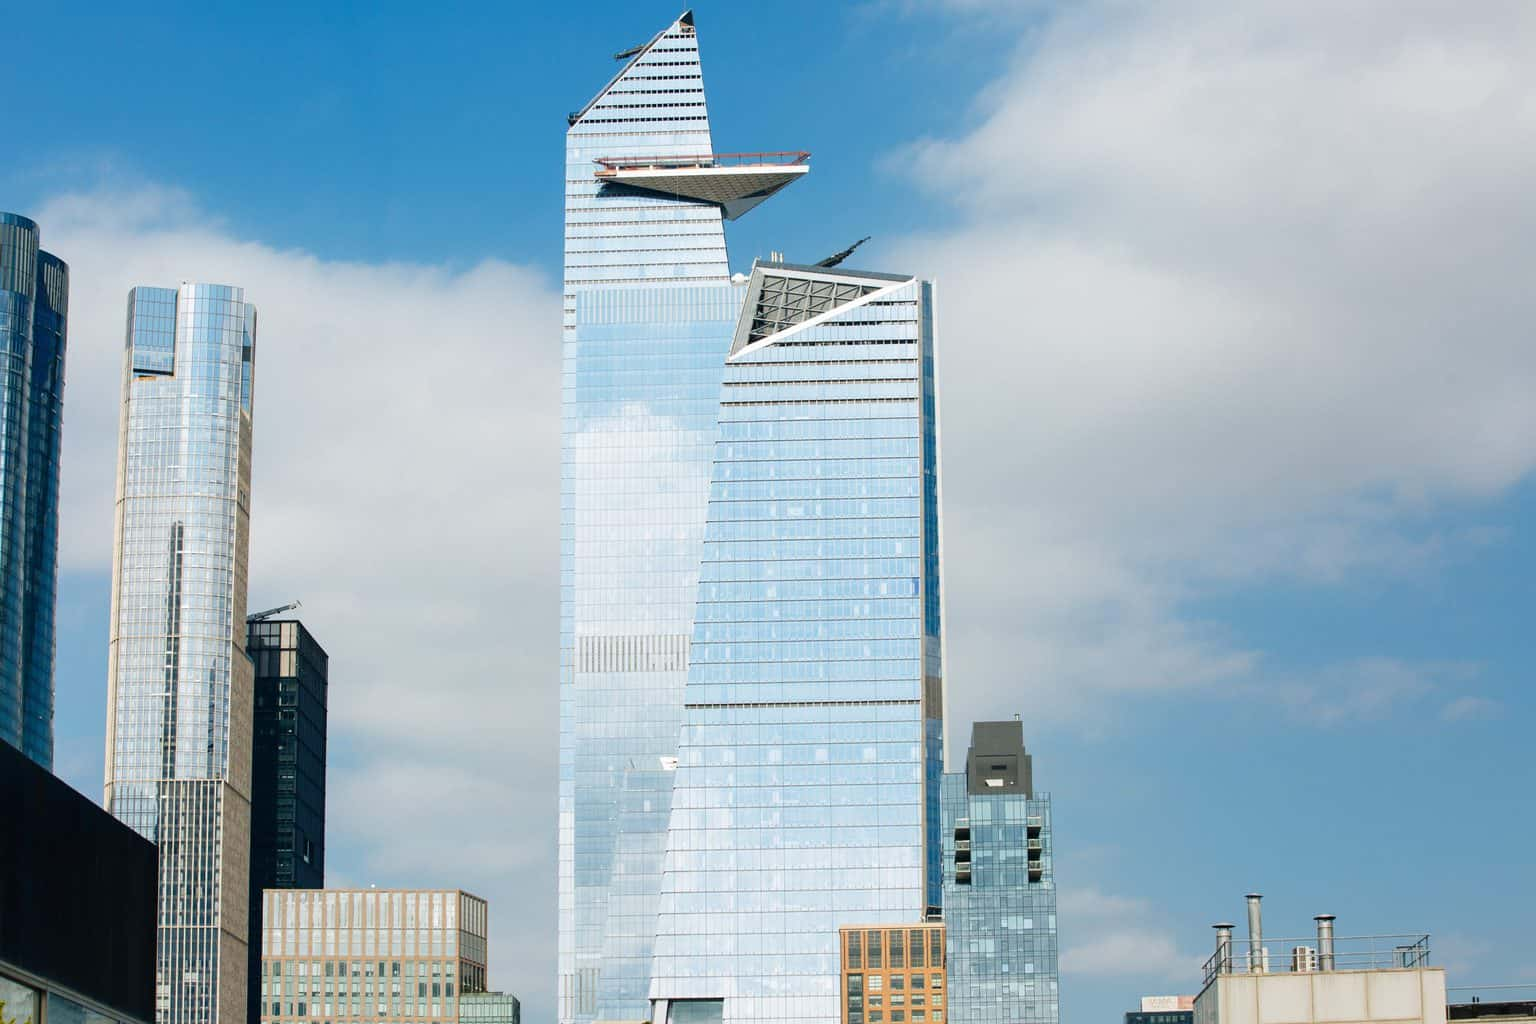 A view of The Edge Observation Deck in New York City's Hudson Yards.